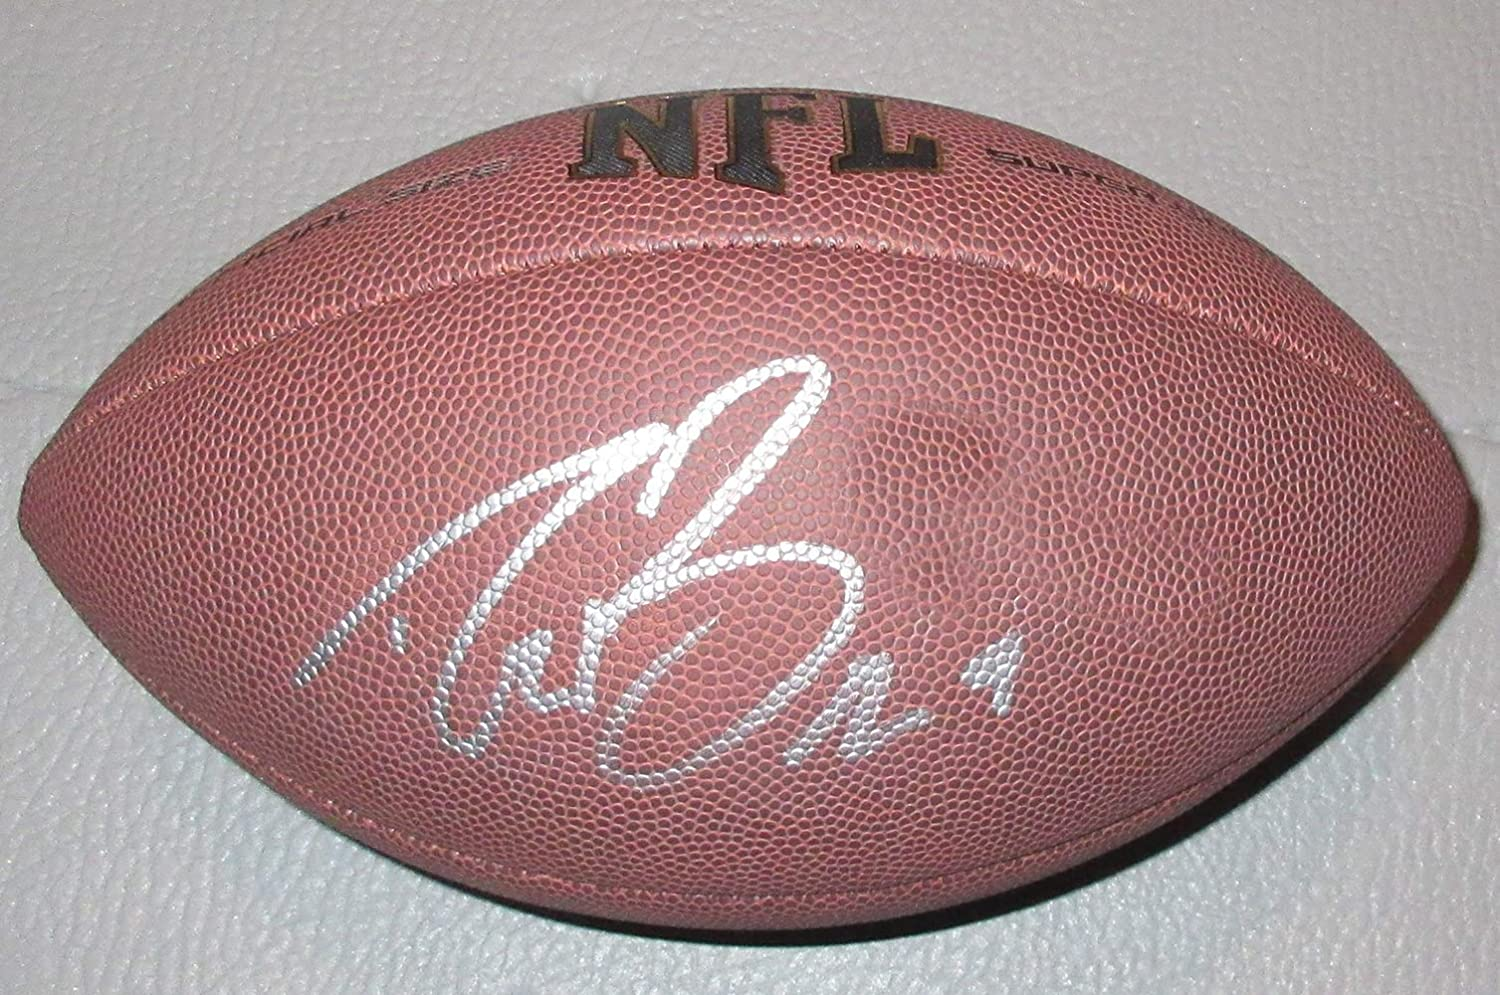 Drew Brees Autographed Wilson NFL Football W/PROOF, Picture of Drew Signing For Us, New Orleans Saints, Pro Bowl, Super Bowl Authentic_Memorabilia